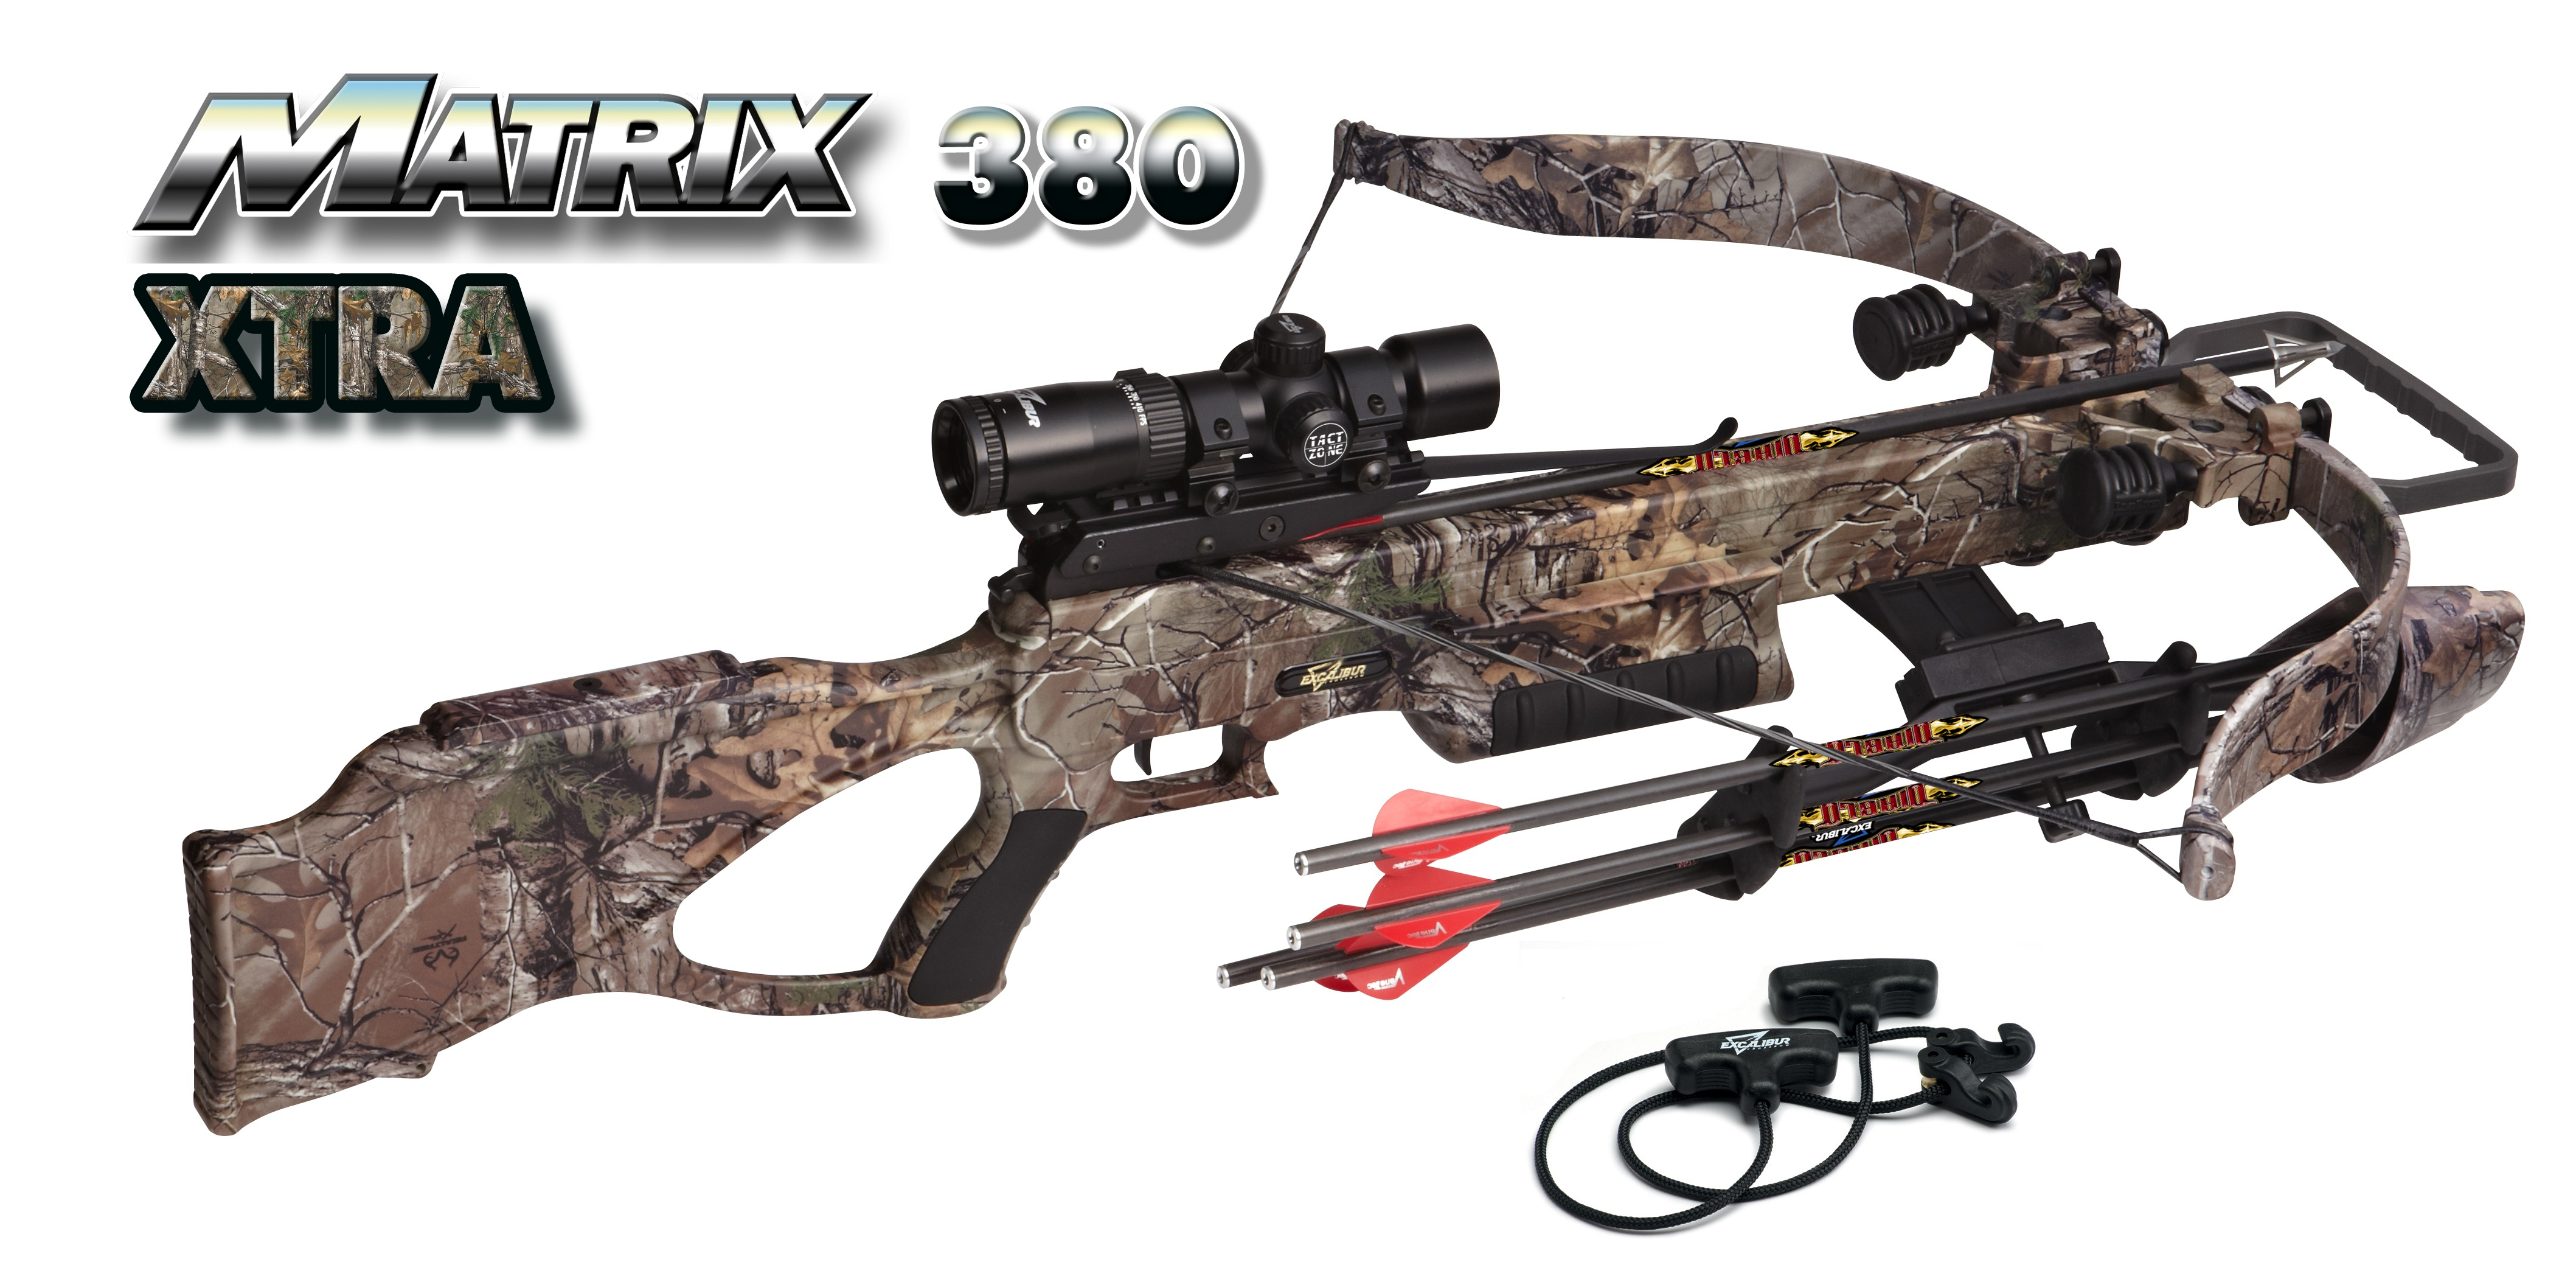 Excalibur Matrix 380 Crossbow